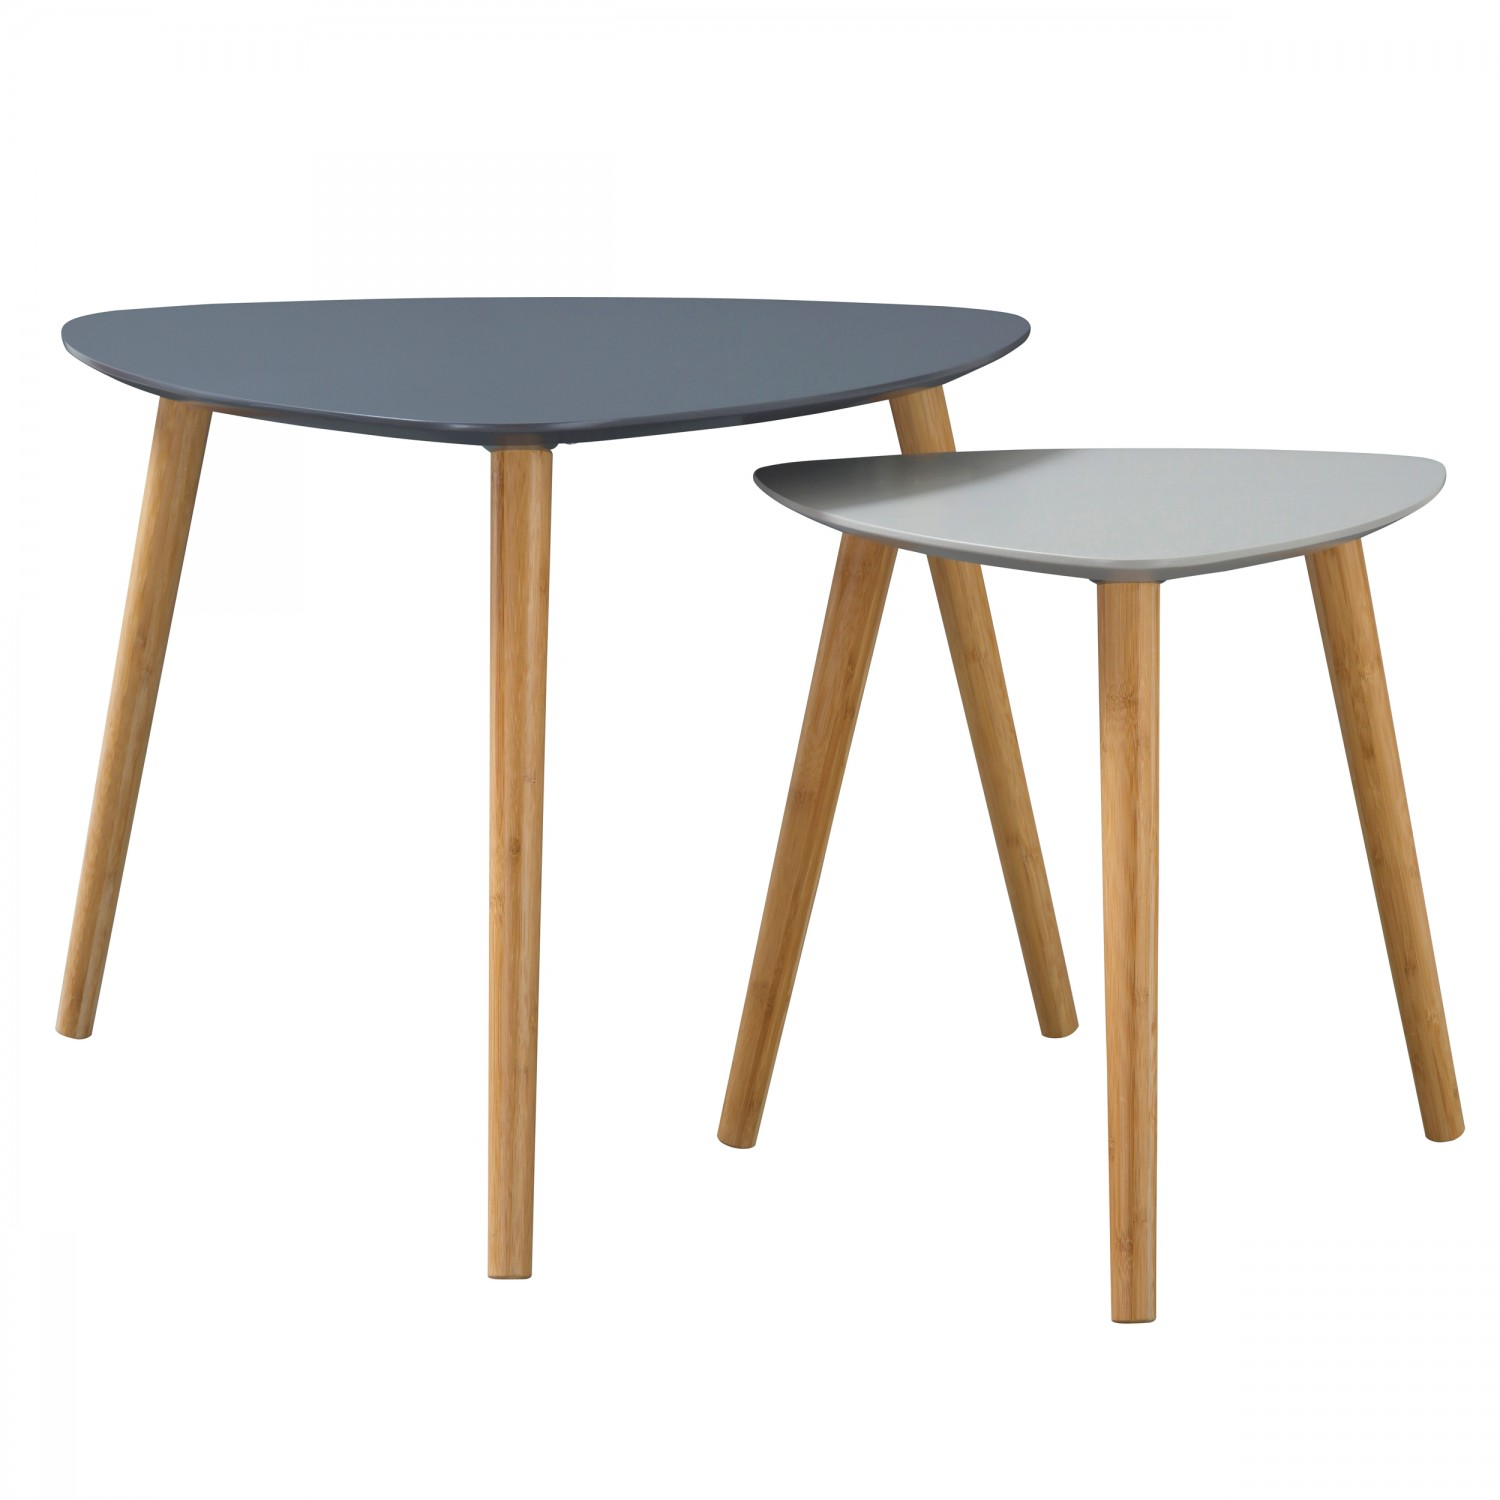 Table basse Anja bicolore grise (Lot de 2)